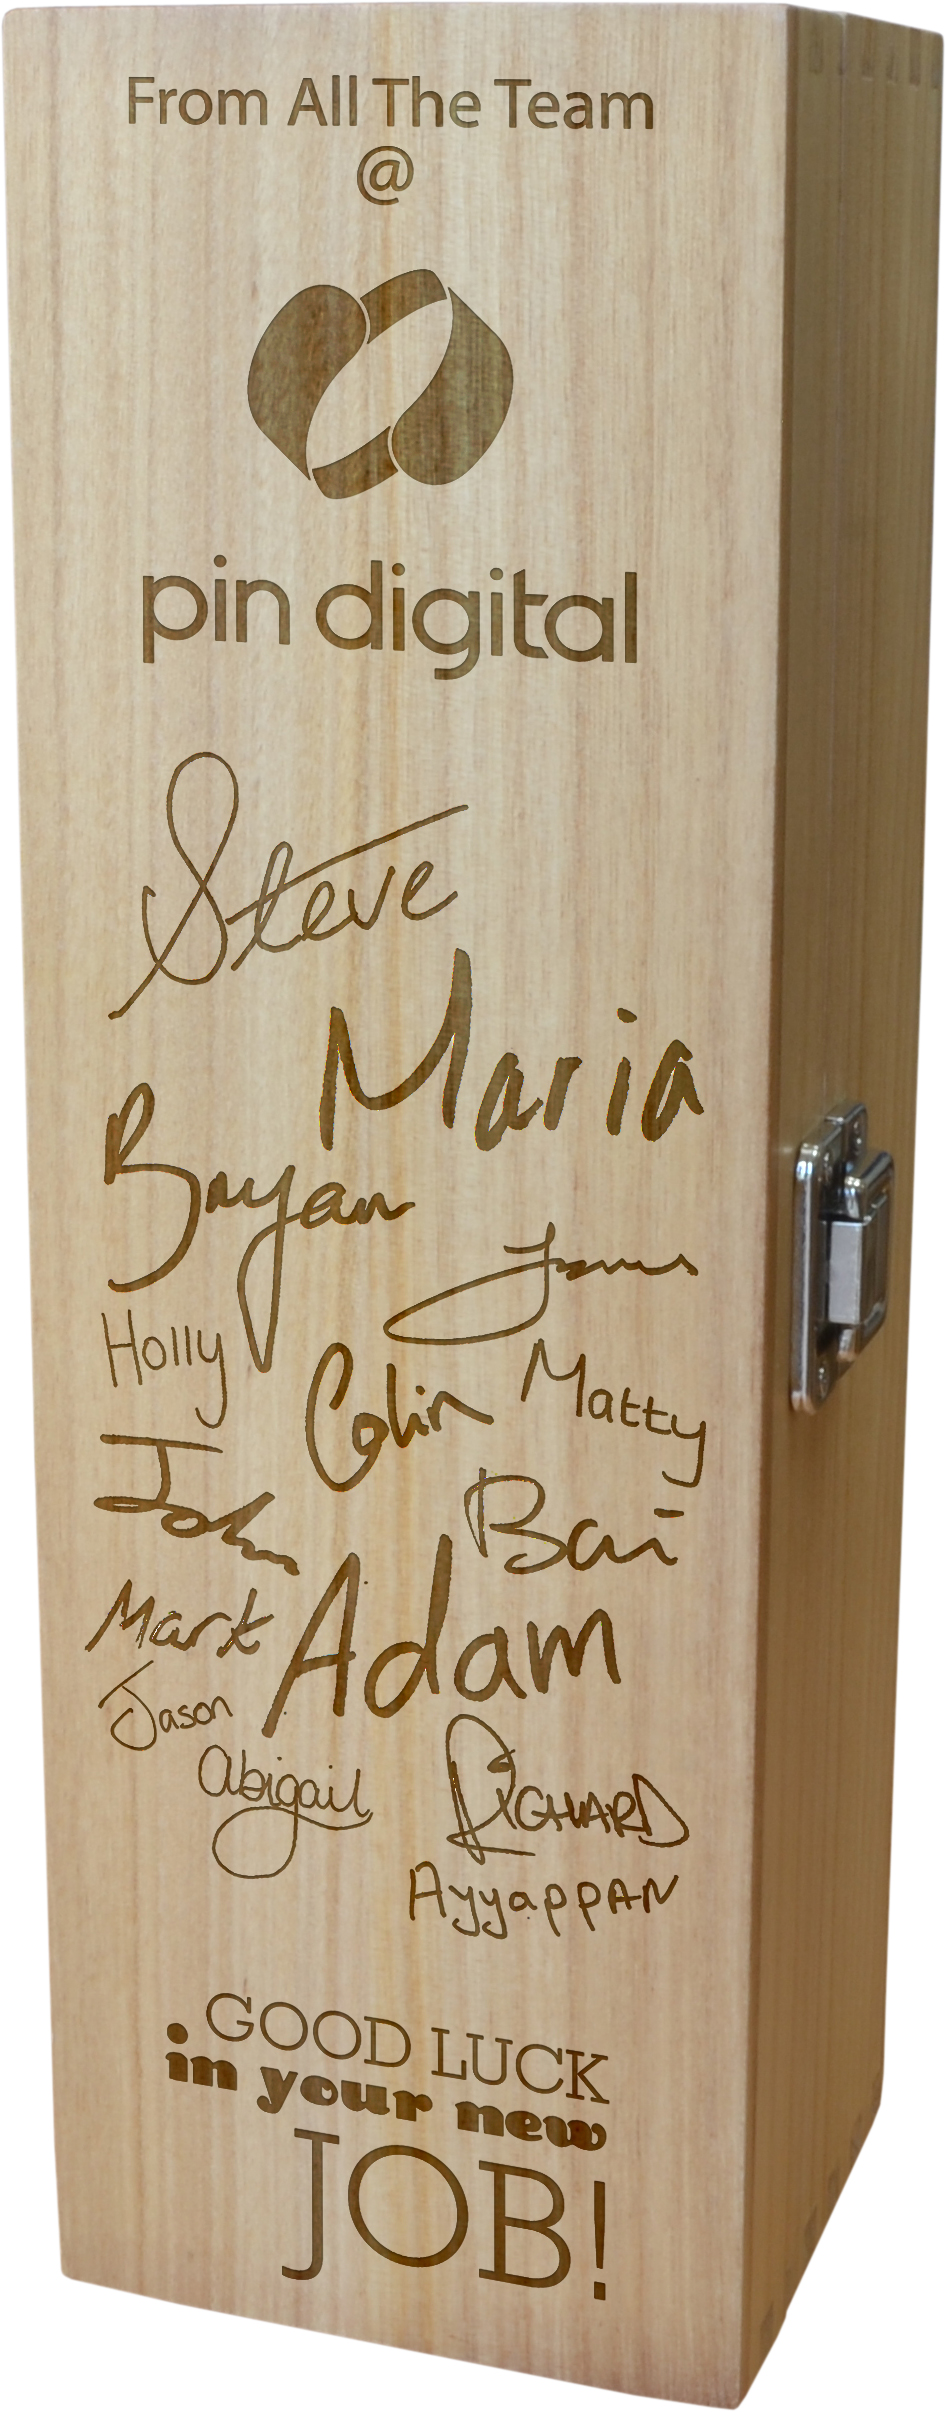 "Bespoke Good Luck Personalised Wooden Wine Box - 35cm (13.75"")"